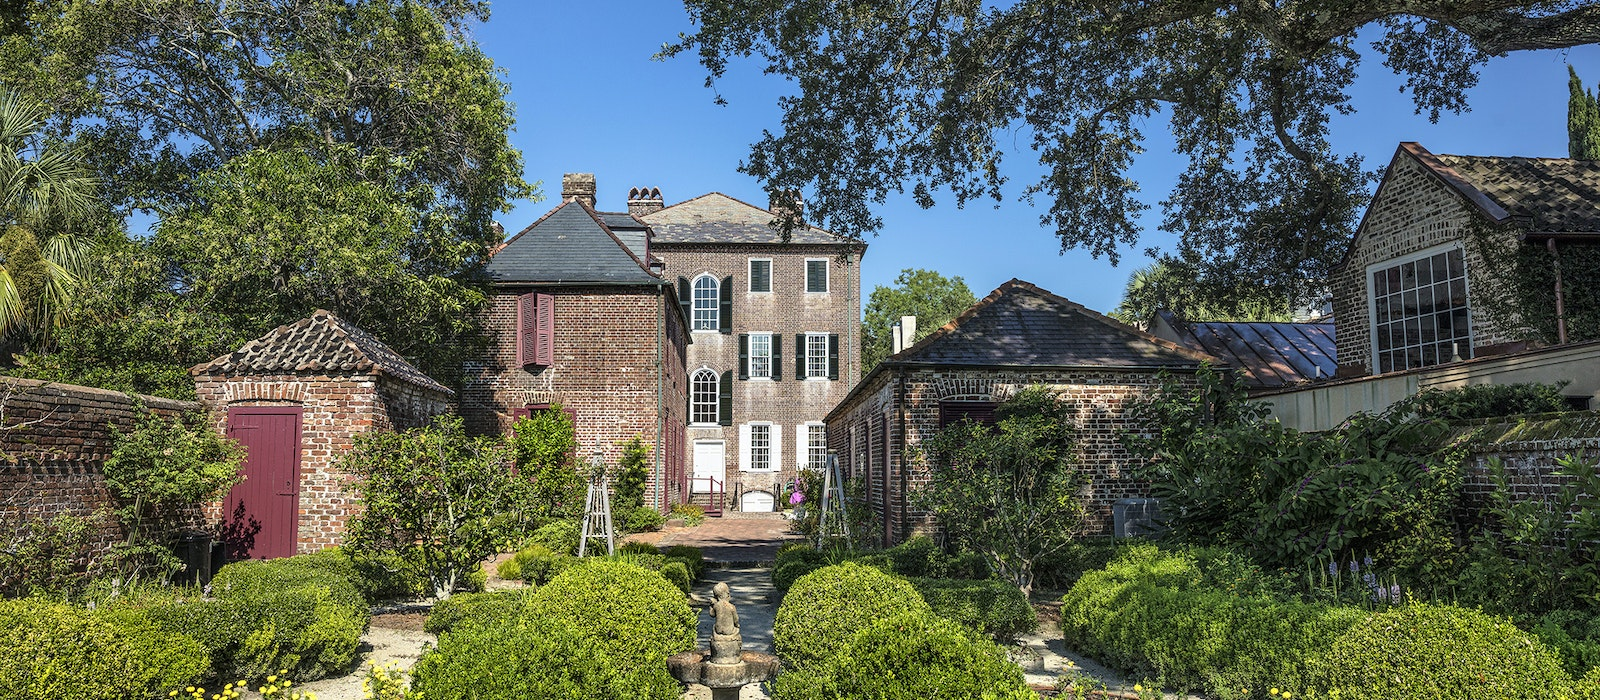 The forbidding walls in Charleston's South of Broad neighborhood hide private gardens, pools, fountains, and historic outbuildings.